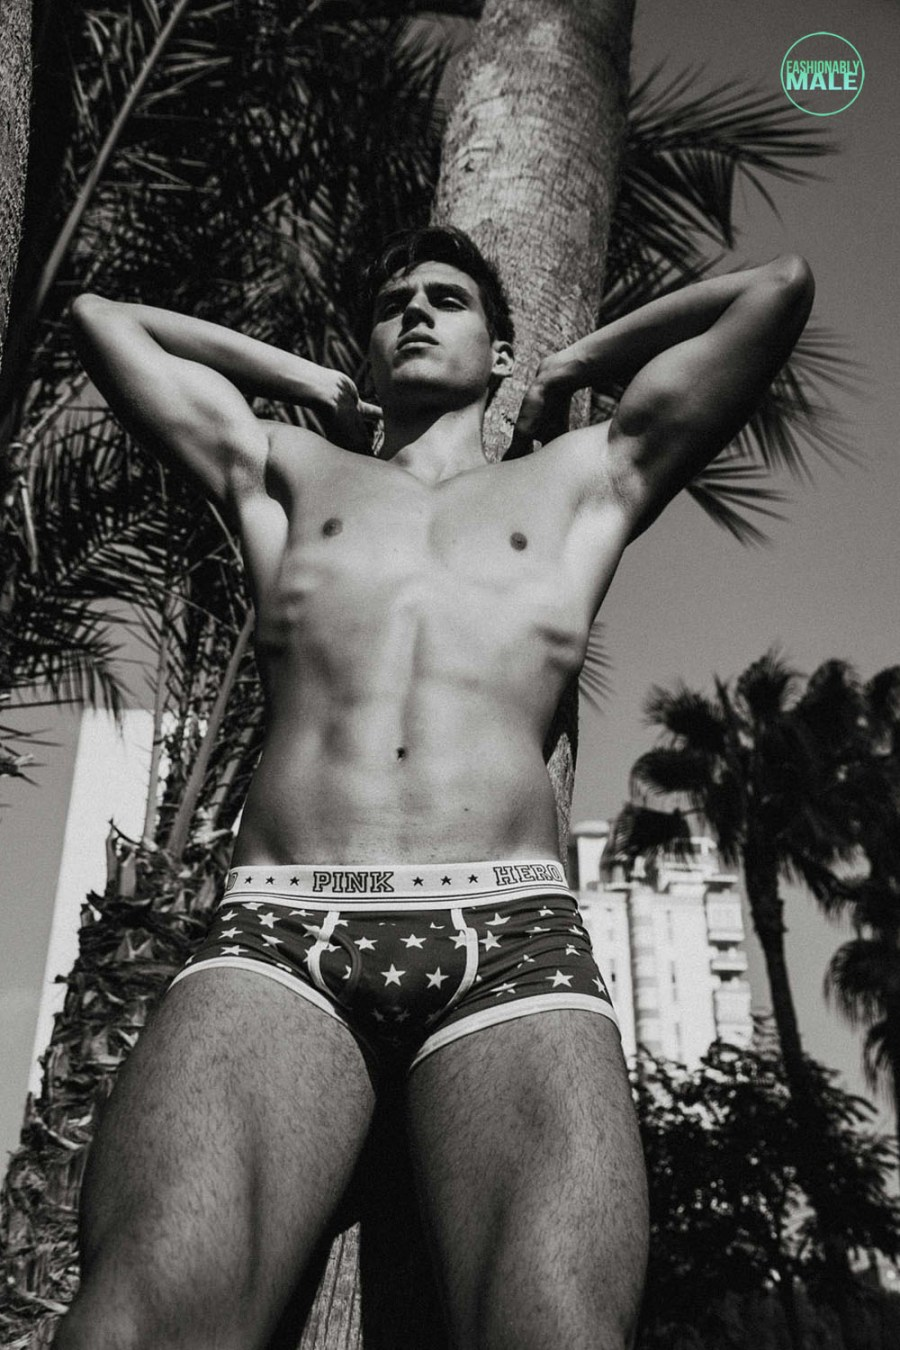 Guillermo by Jose Martinez for Fashionably Male 10